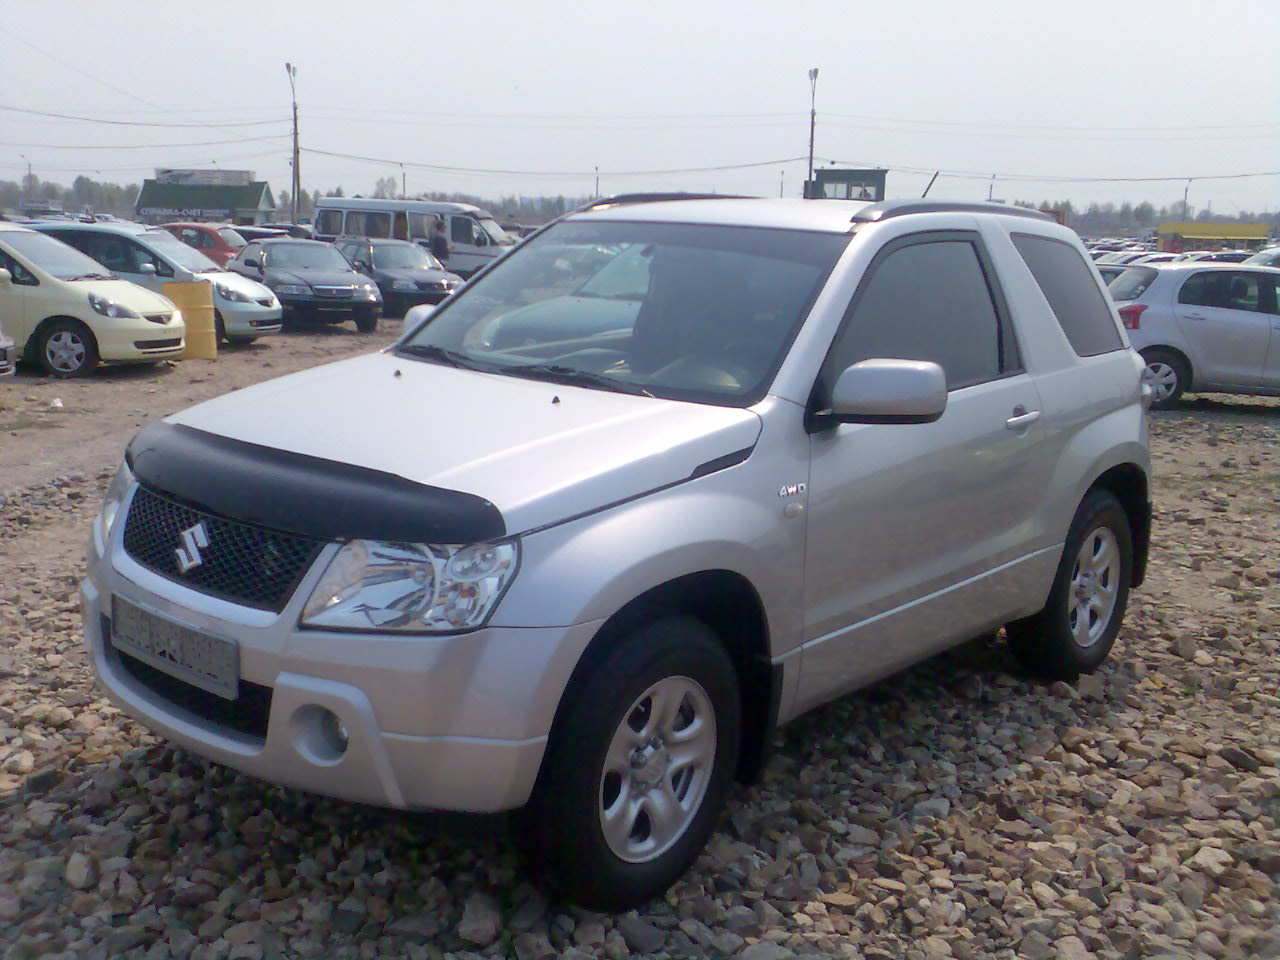 used 2006 suzuki grand vitara photos 1600cc gasoline. Black Bedroom Furniture Sets. Home Design Ideas